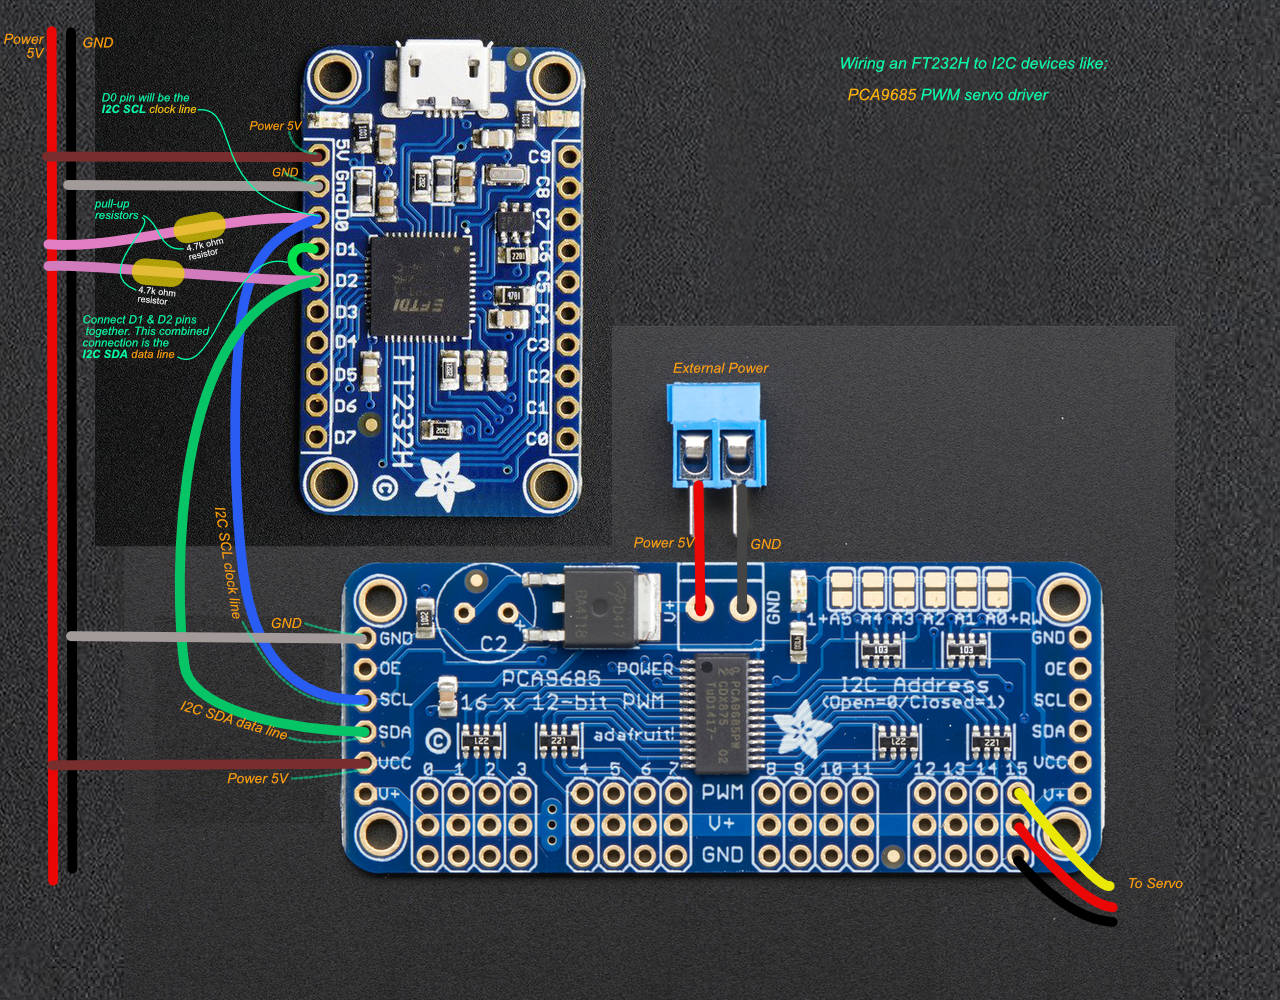 FT232H PCA9685 01 1200x1000 adafruit customer service forums \u2022 view topic ft232h & pwm  at readyjetset.co